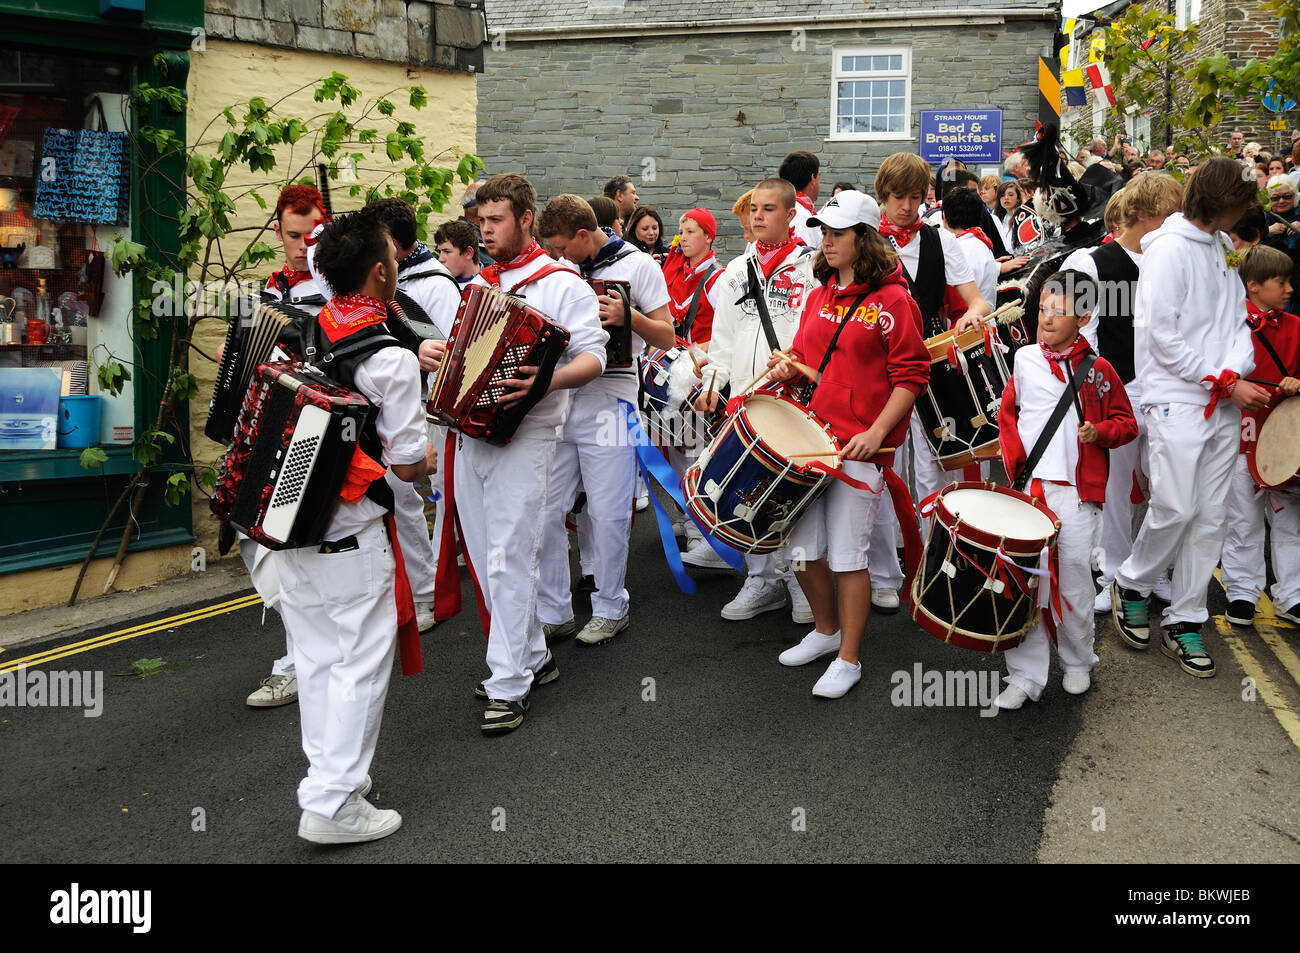 teenagers playing music and leading the parade on obby oss day in padstow, cornwall, uk - Stock Image